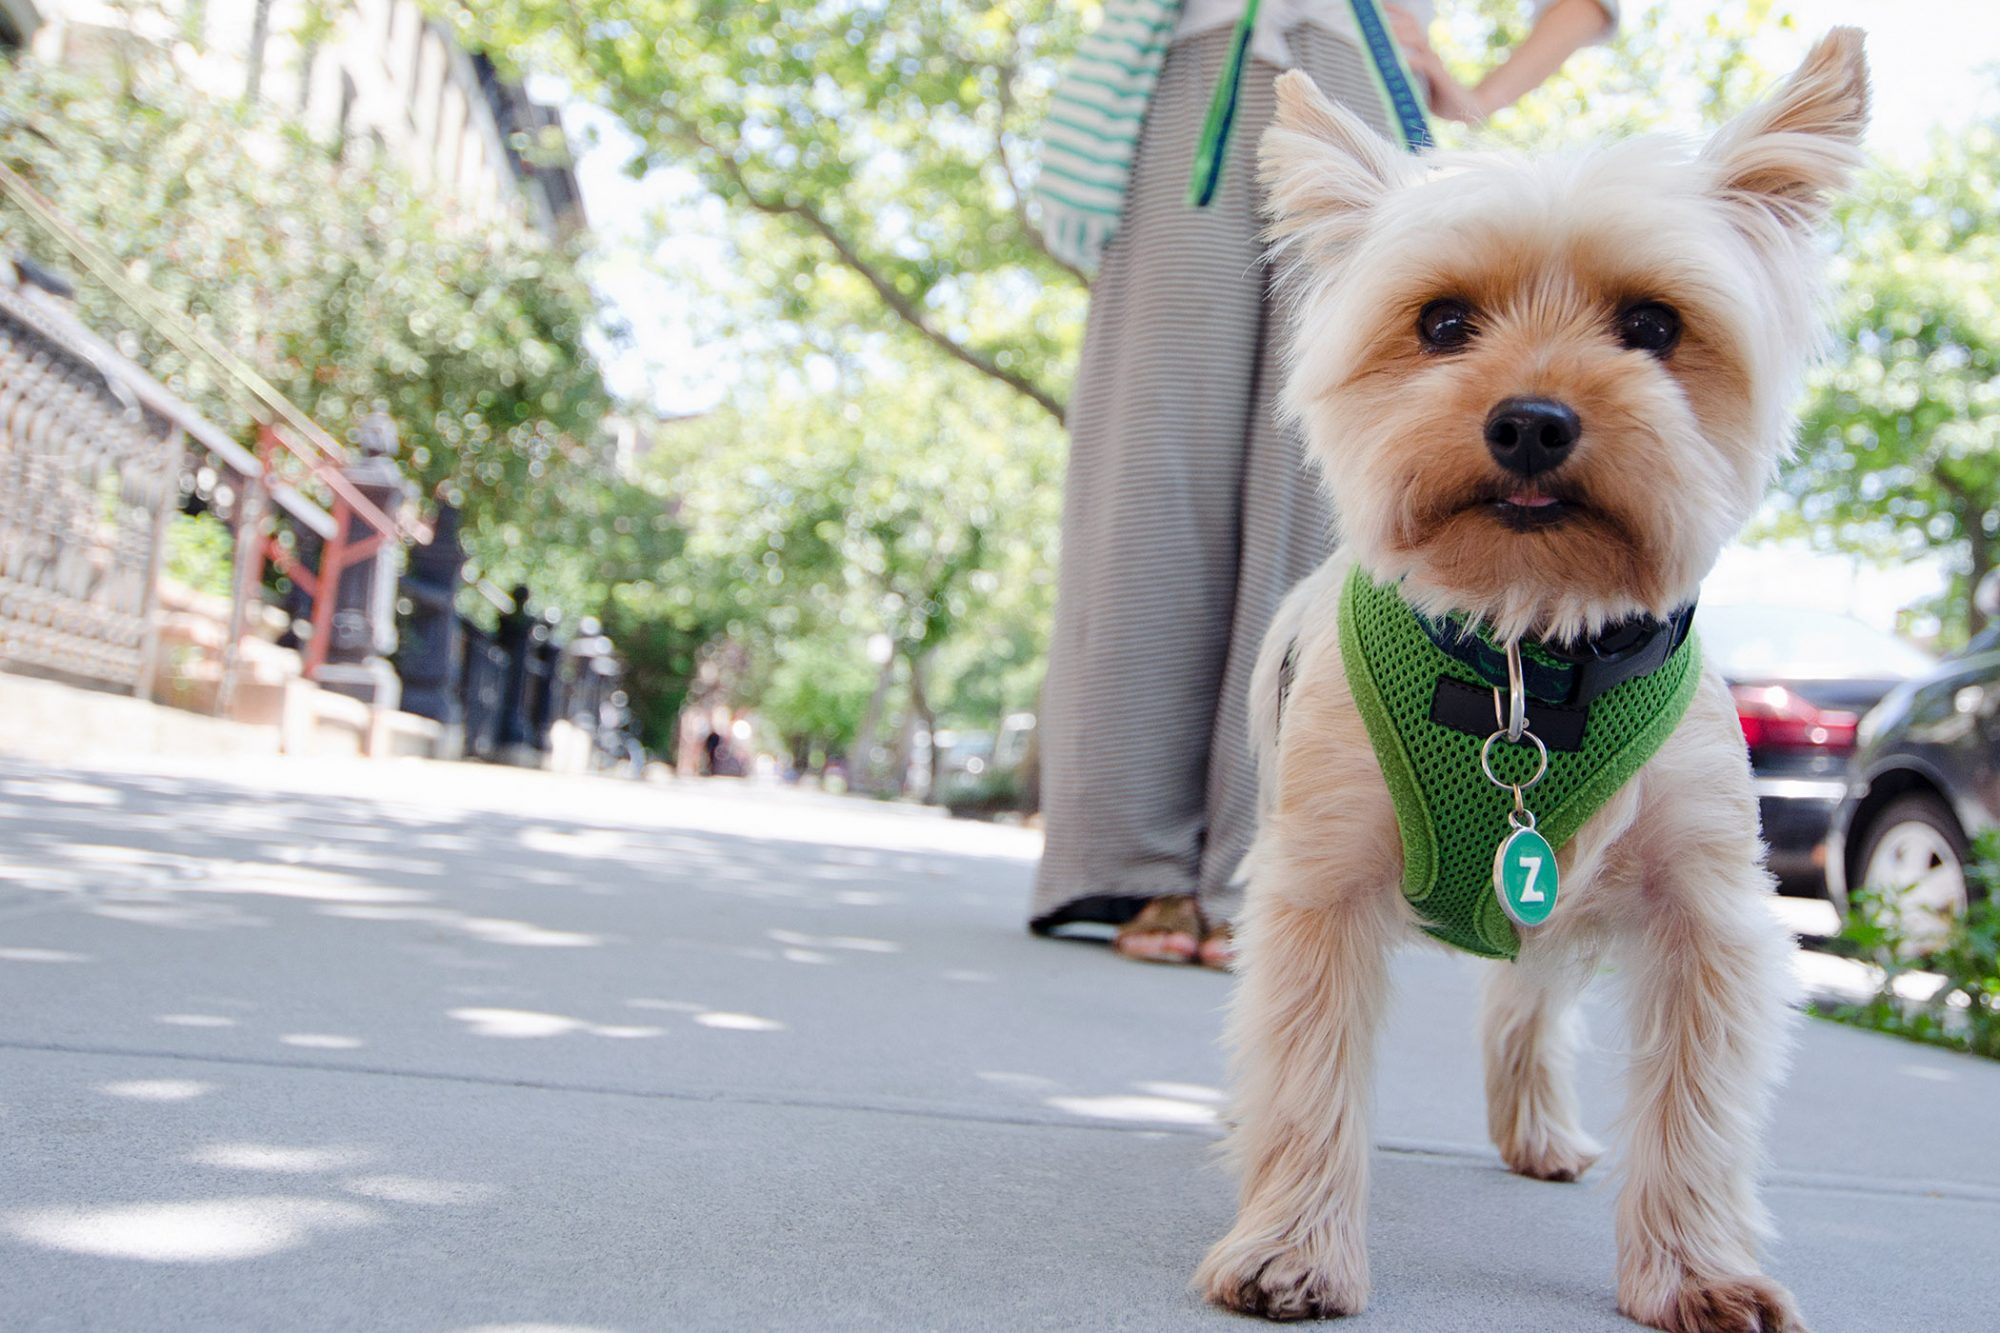 light-color yorkie walking on leash in the city